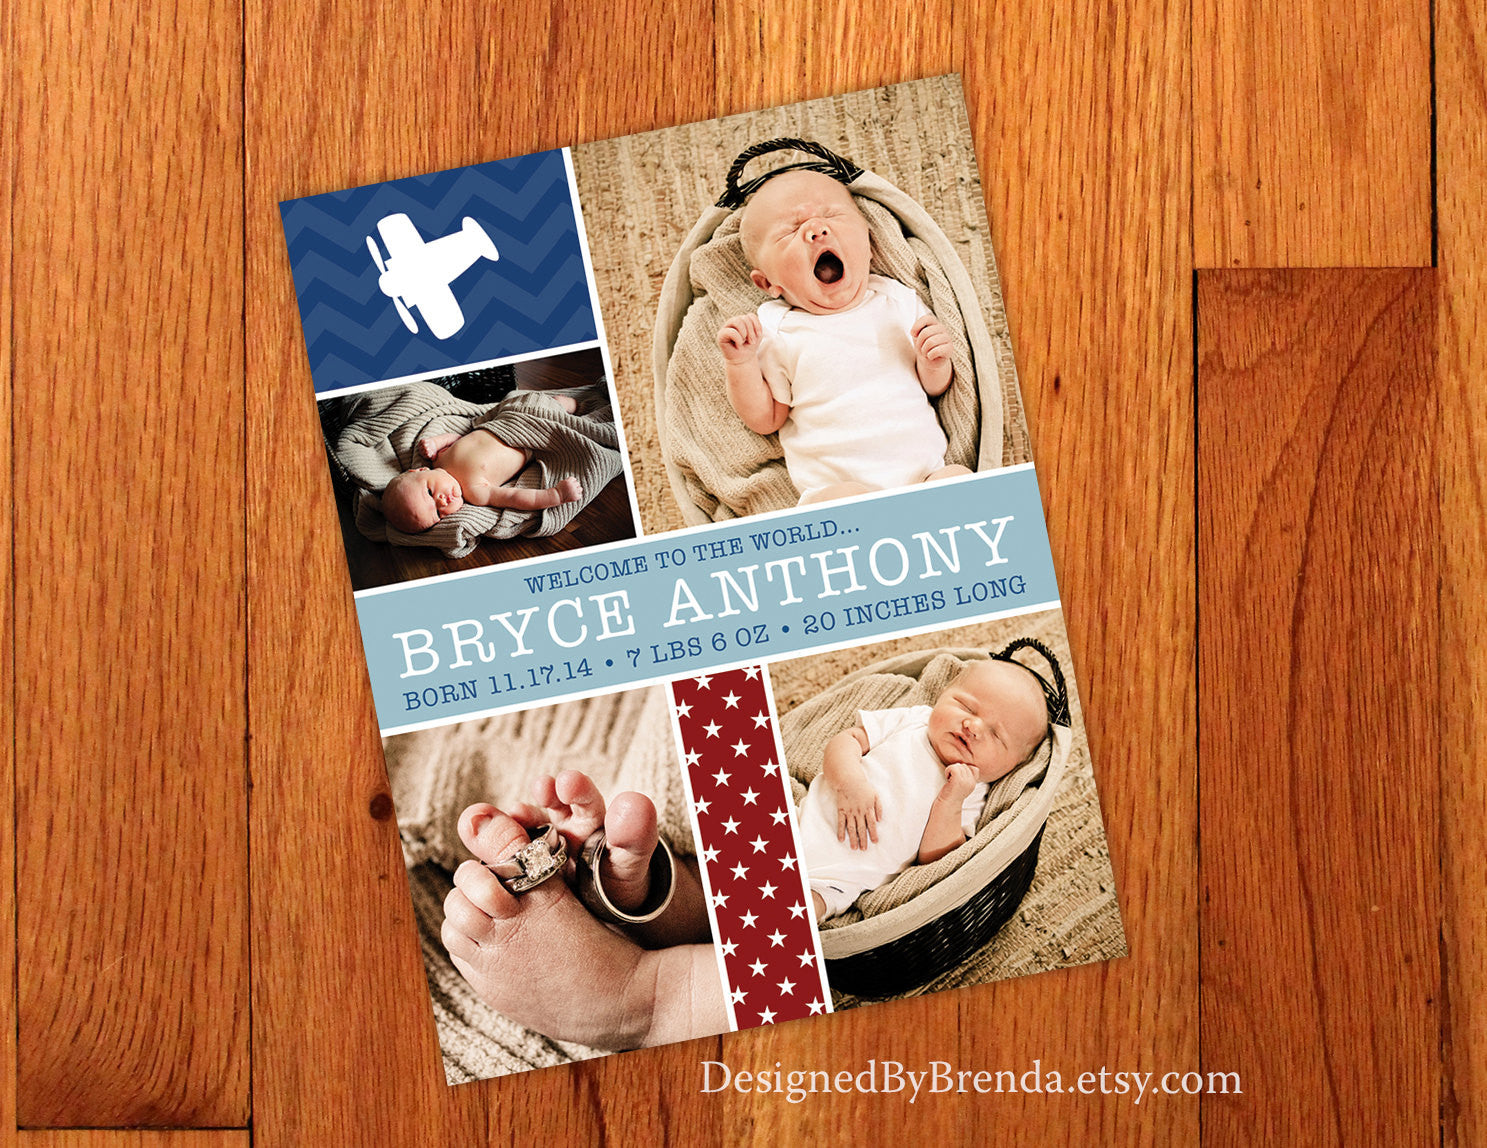 Stars and Airplanes Birth Announcement Card with Photos - Fun Red, White & Blue